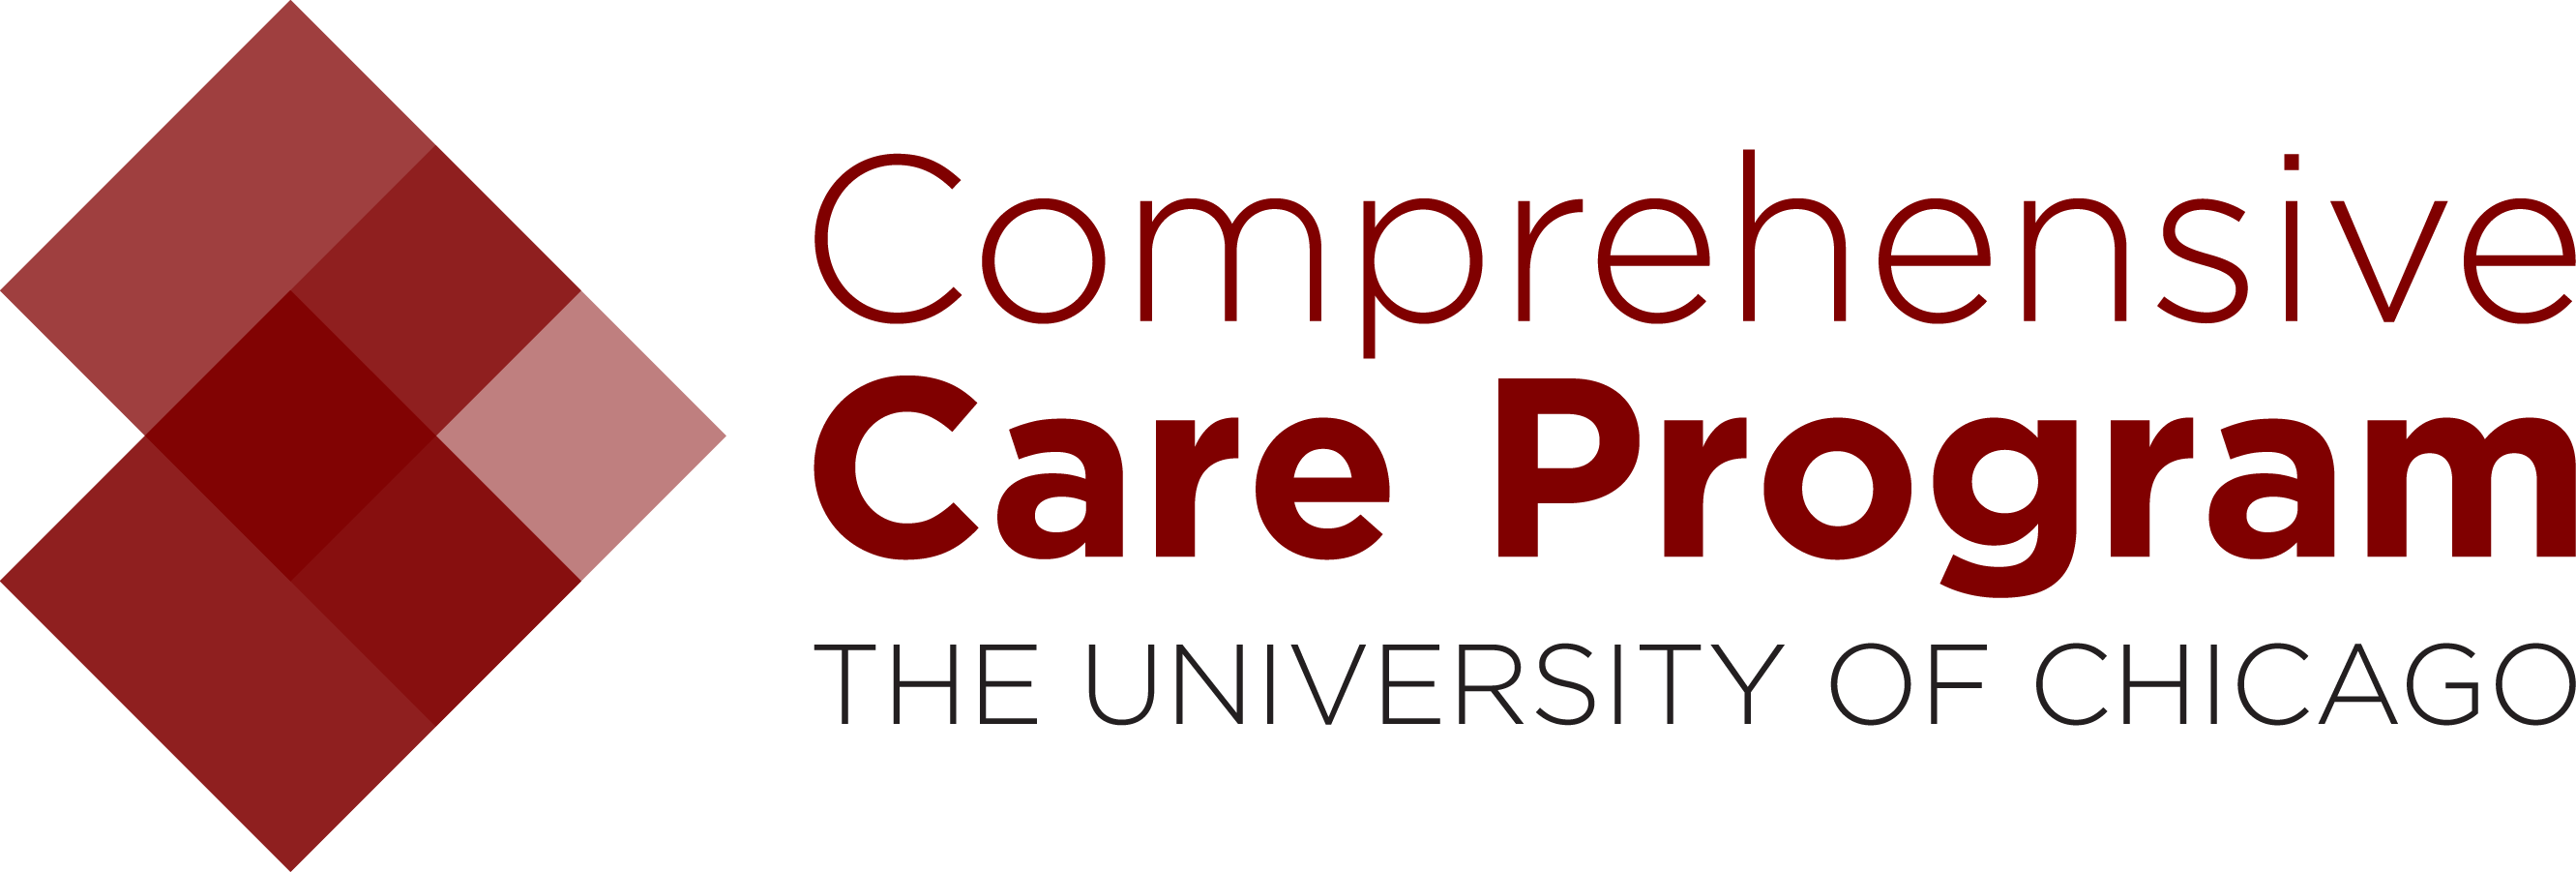 Comprehensive Care Program UofC